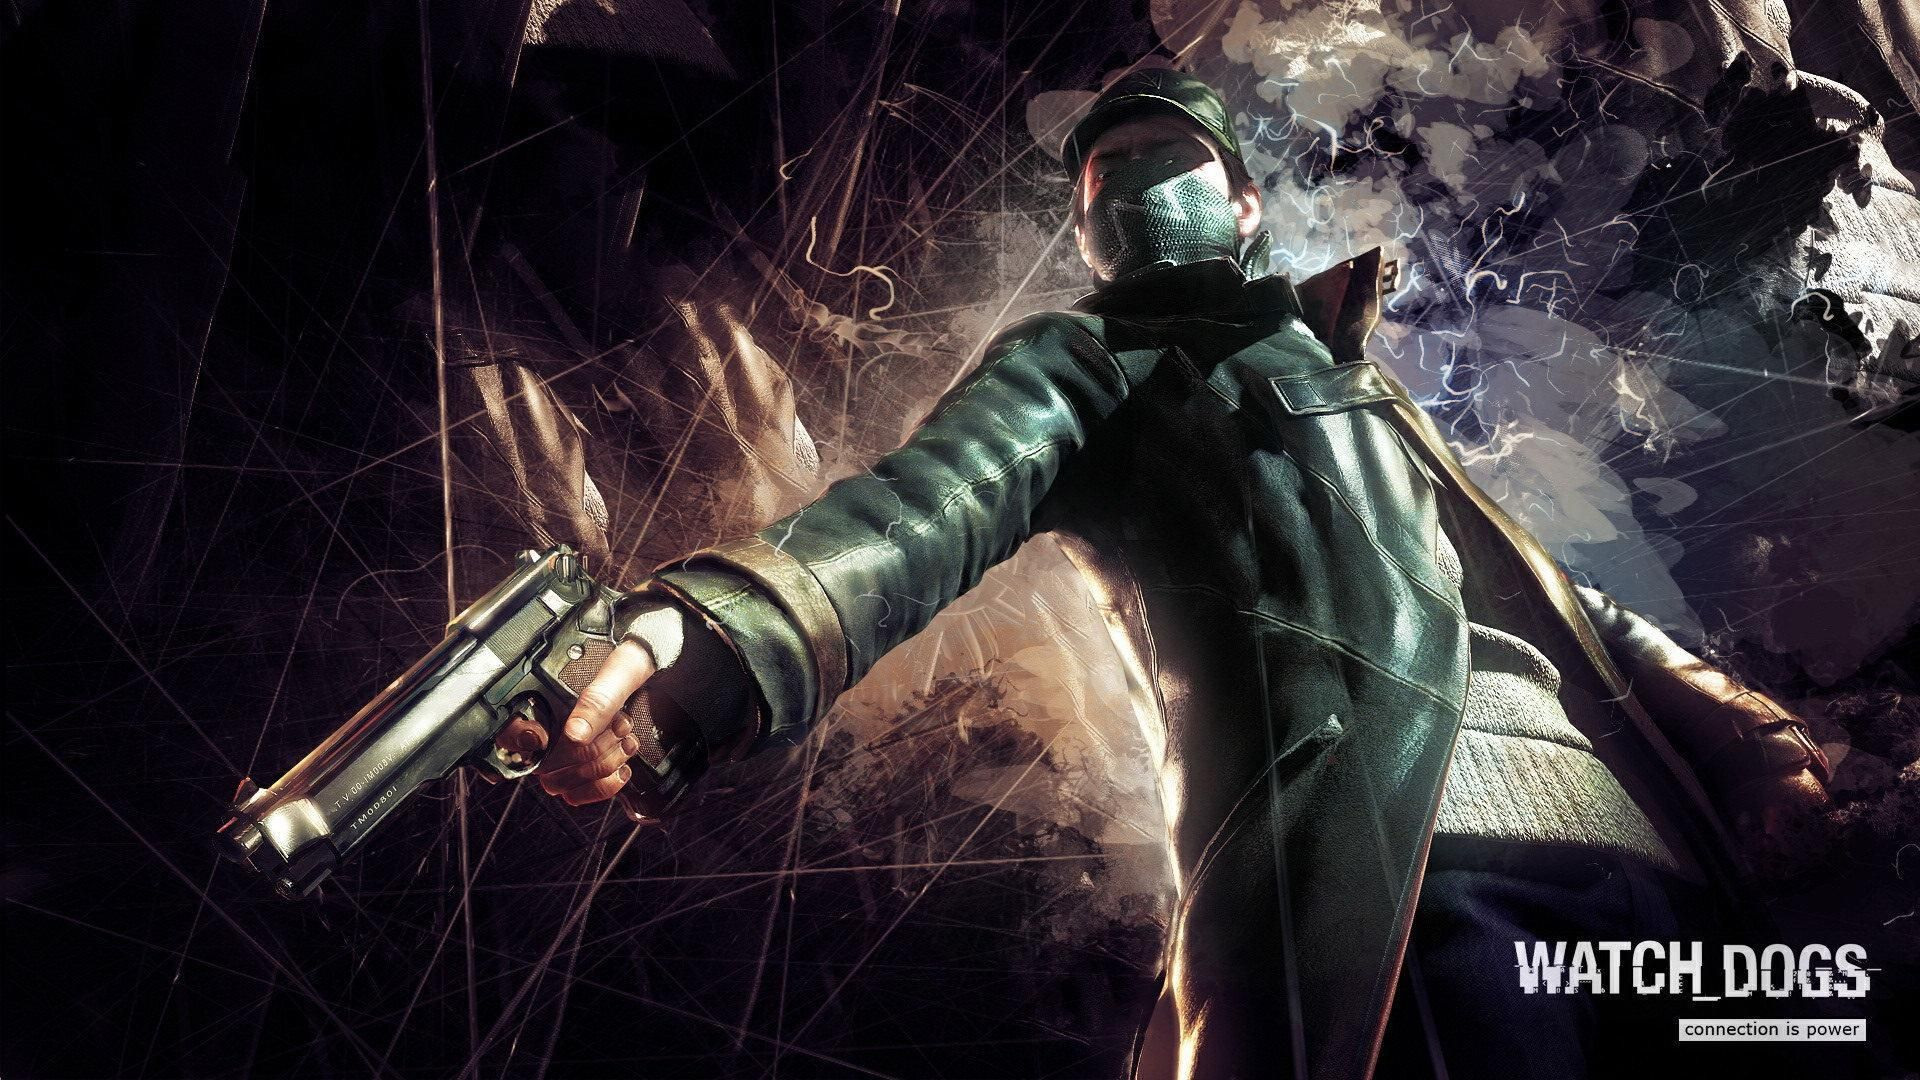 watch dogs connection power | gaming desktop wallpapers | pinterest